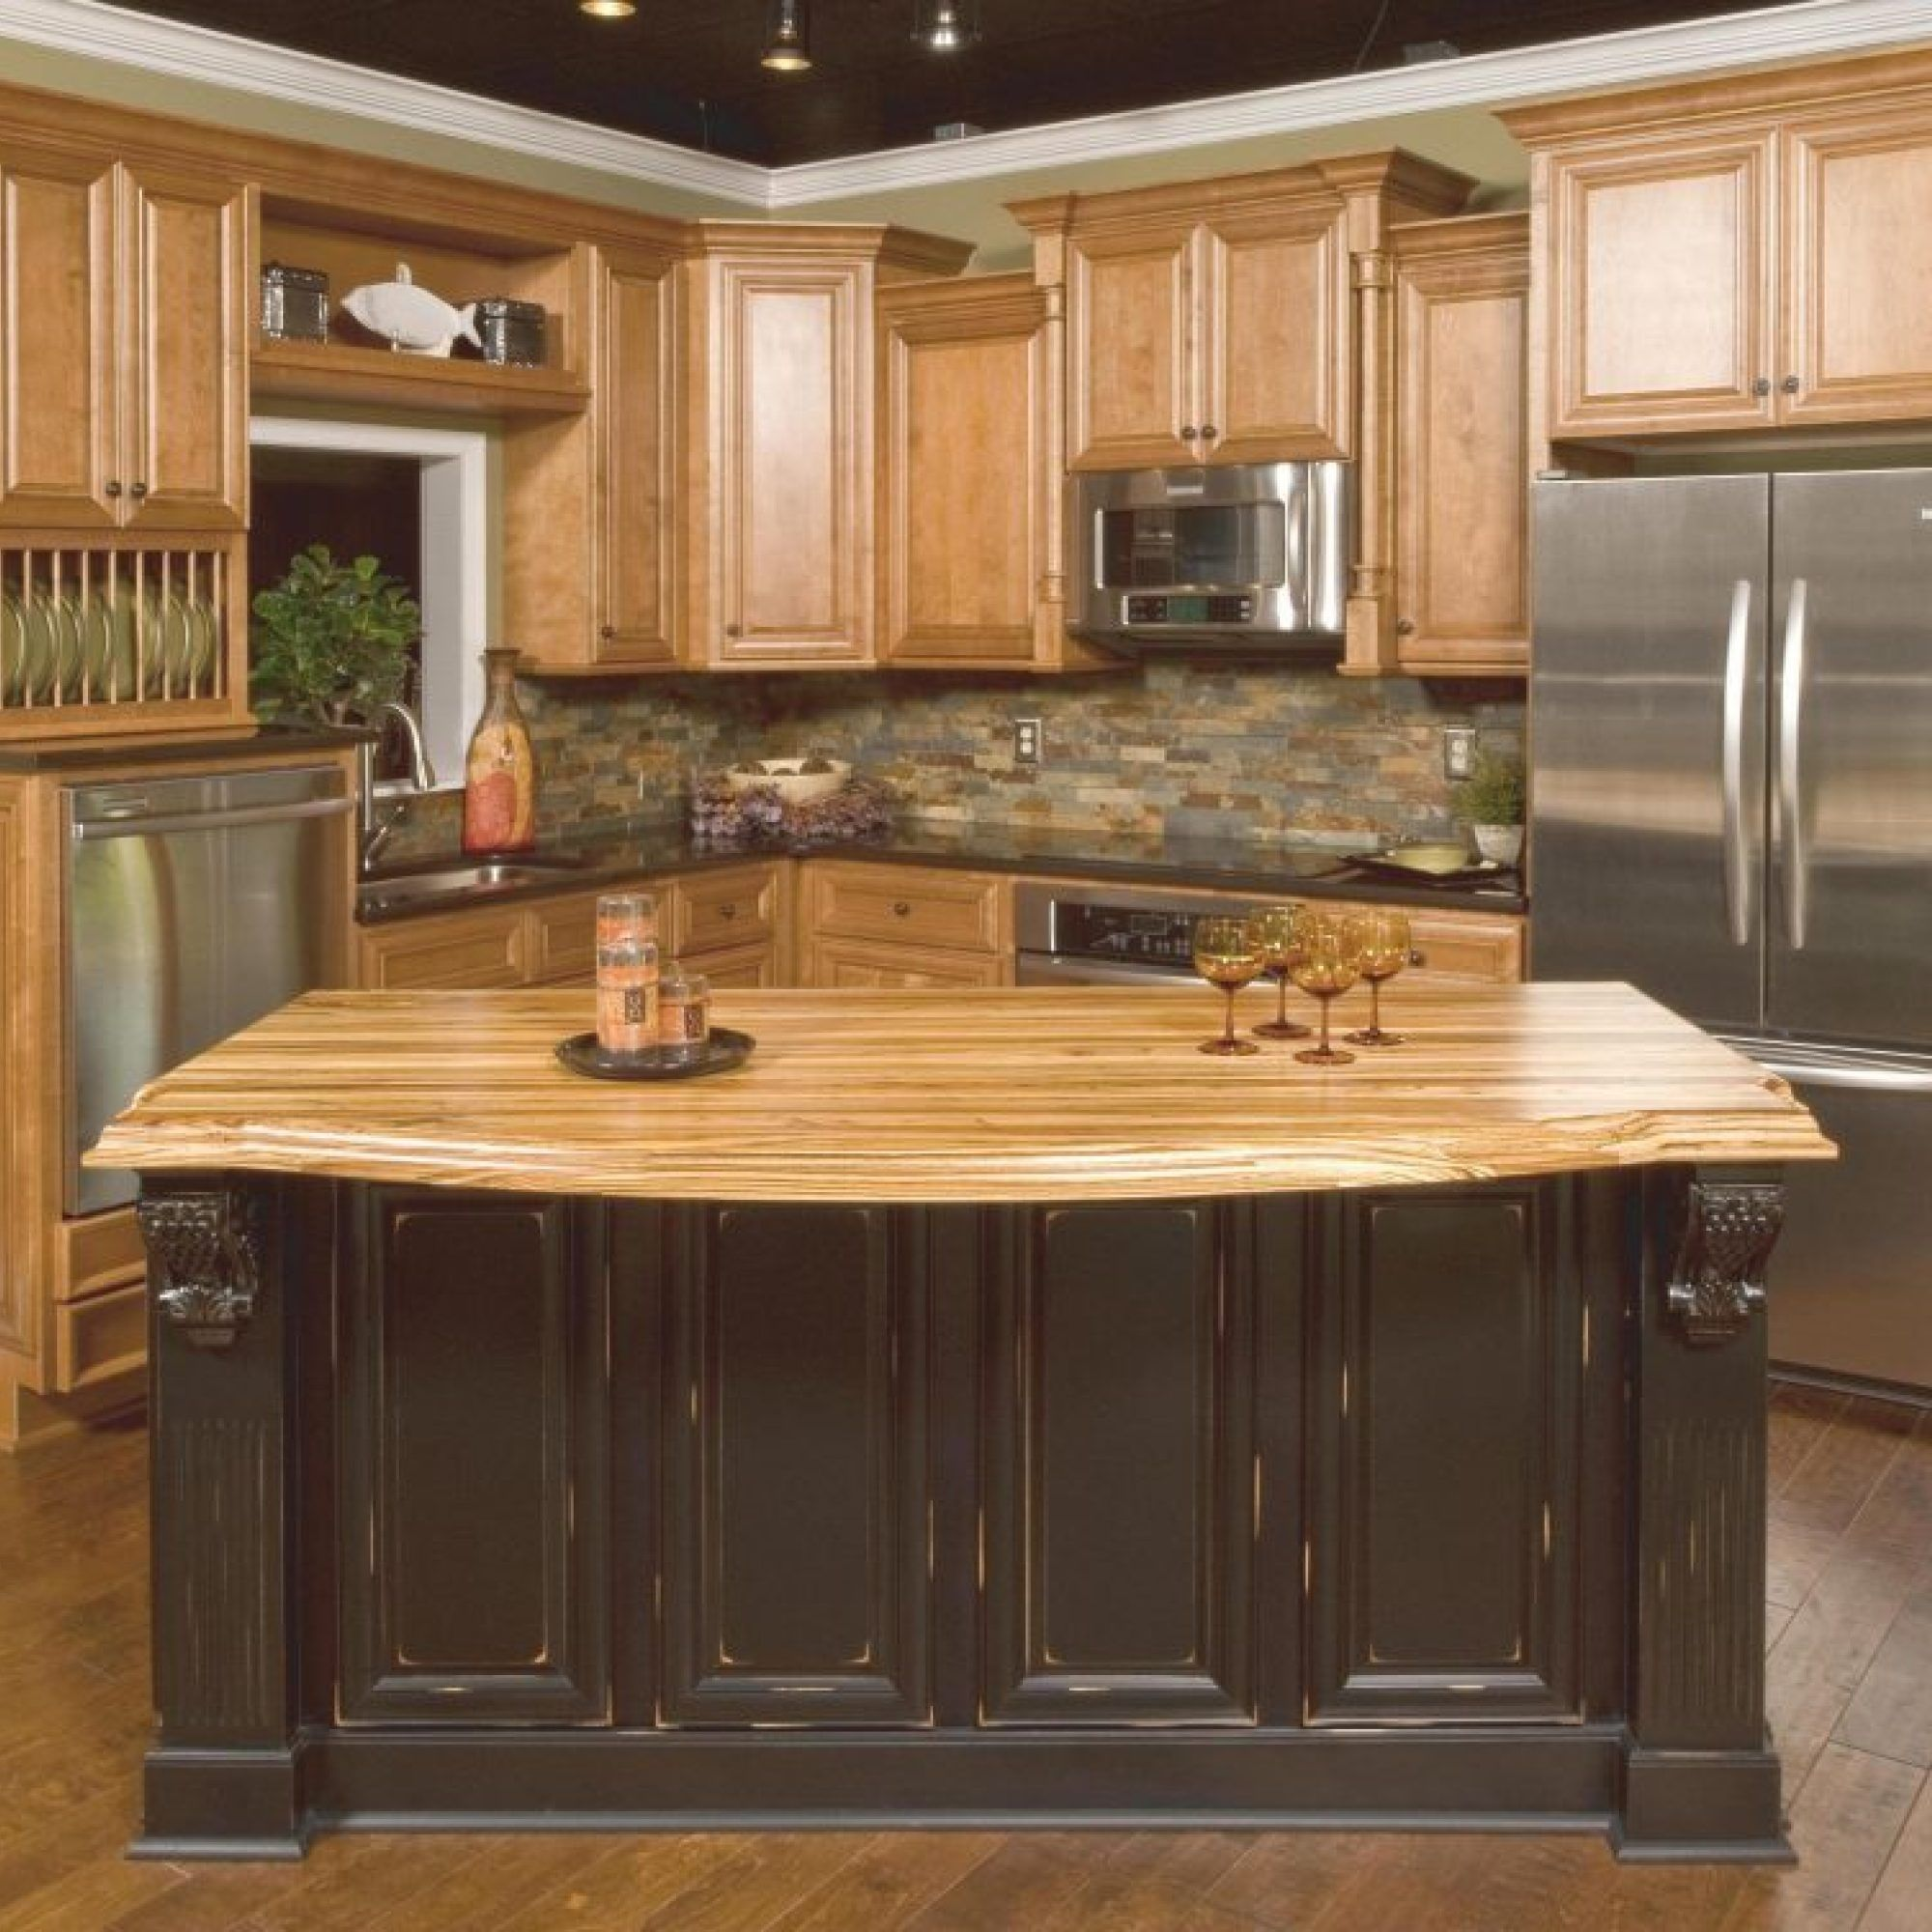 40+ Light Wood Kitchen Cabinets Rustic No Longer a Mystery ...